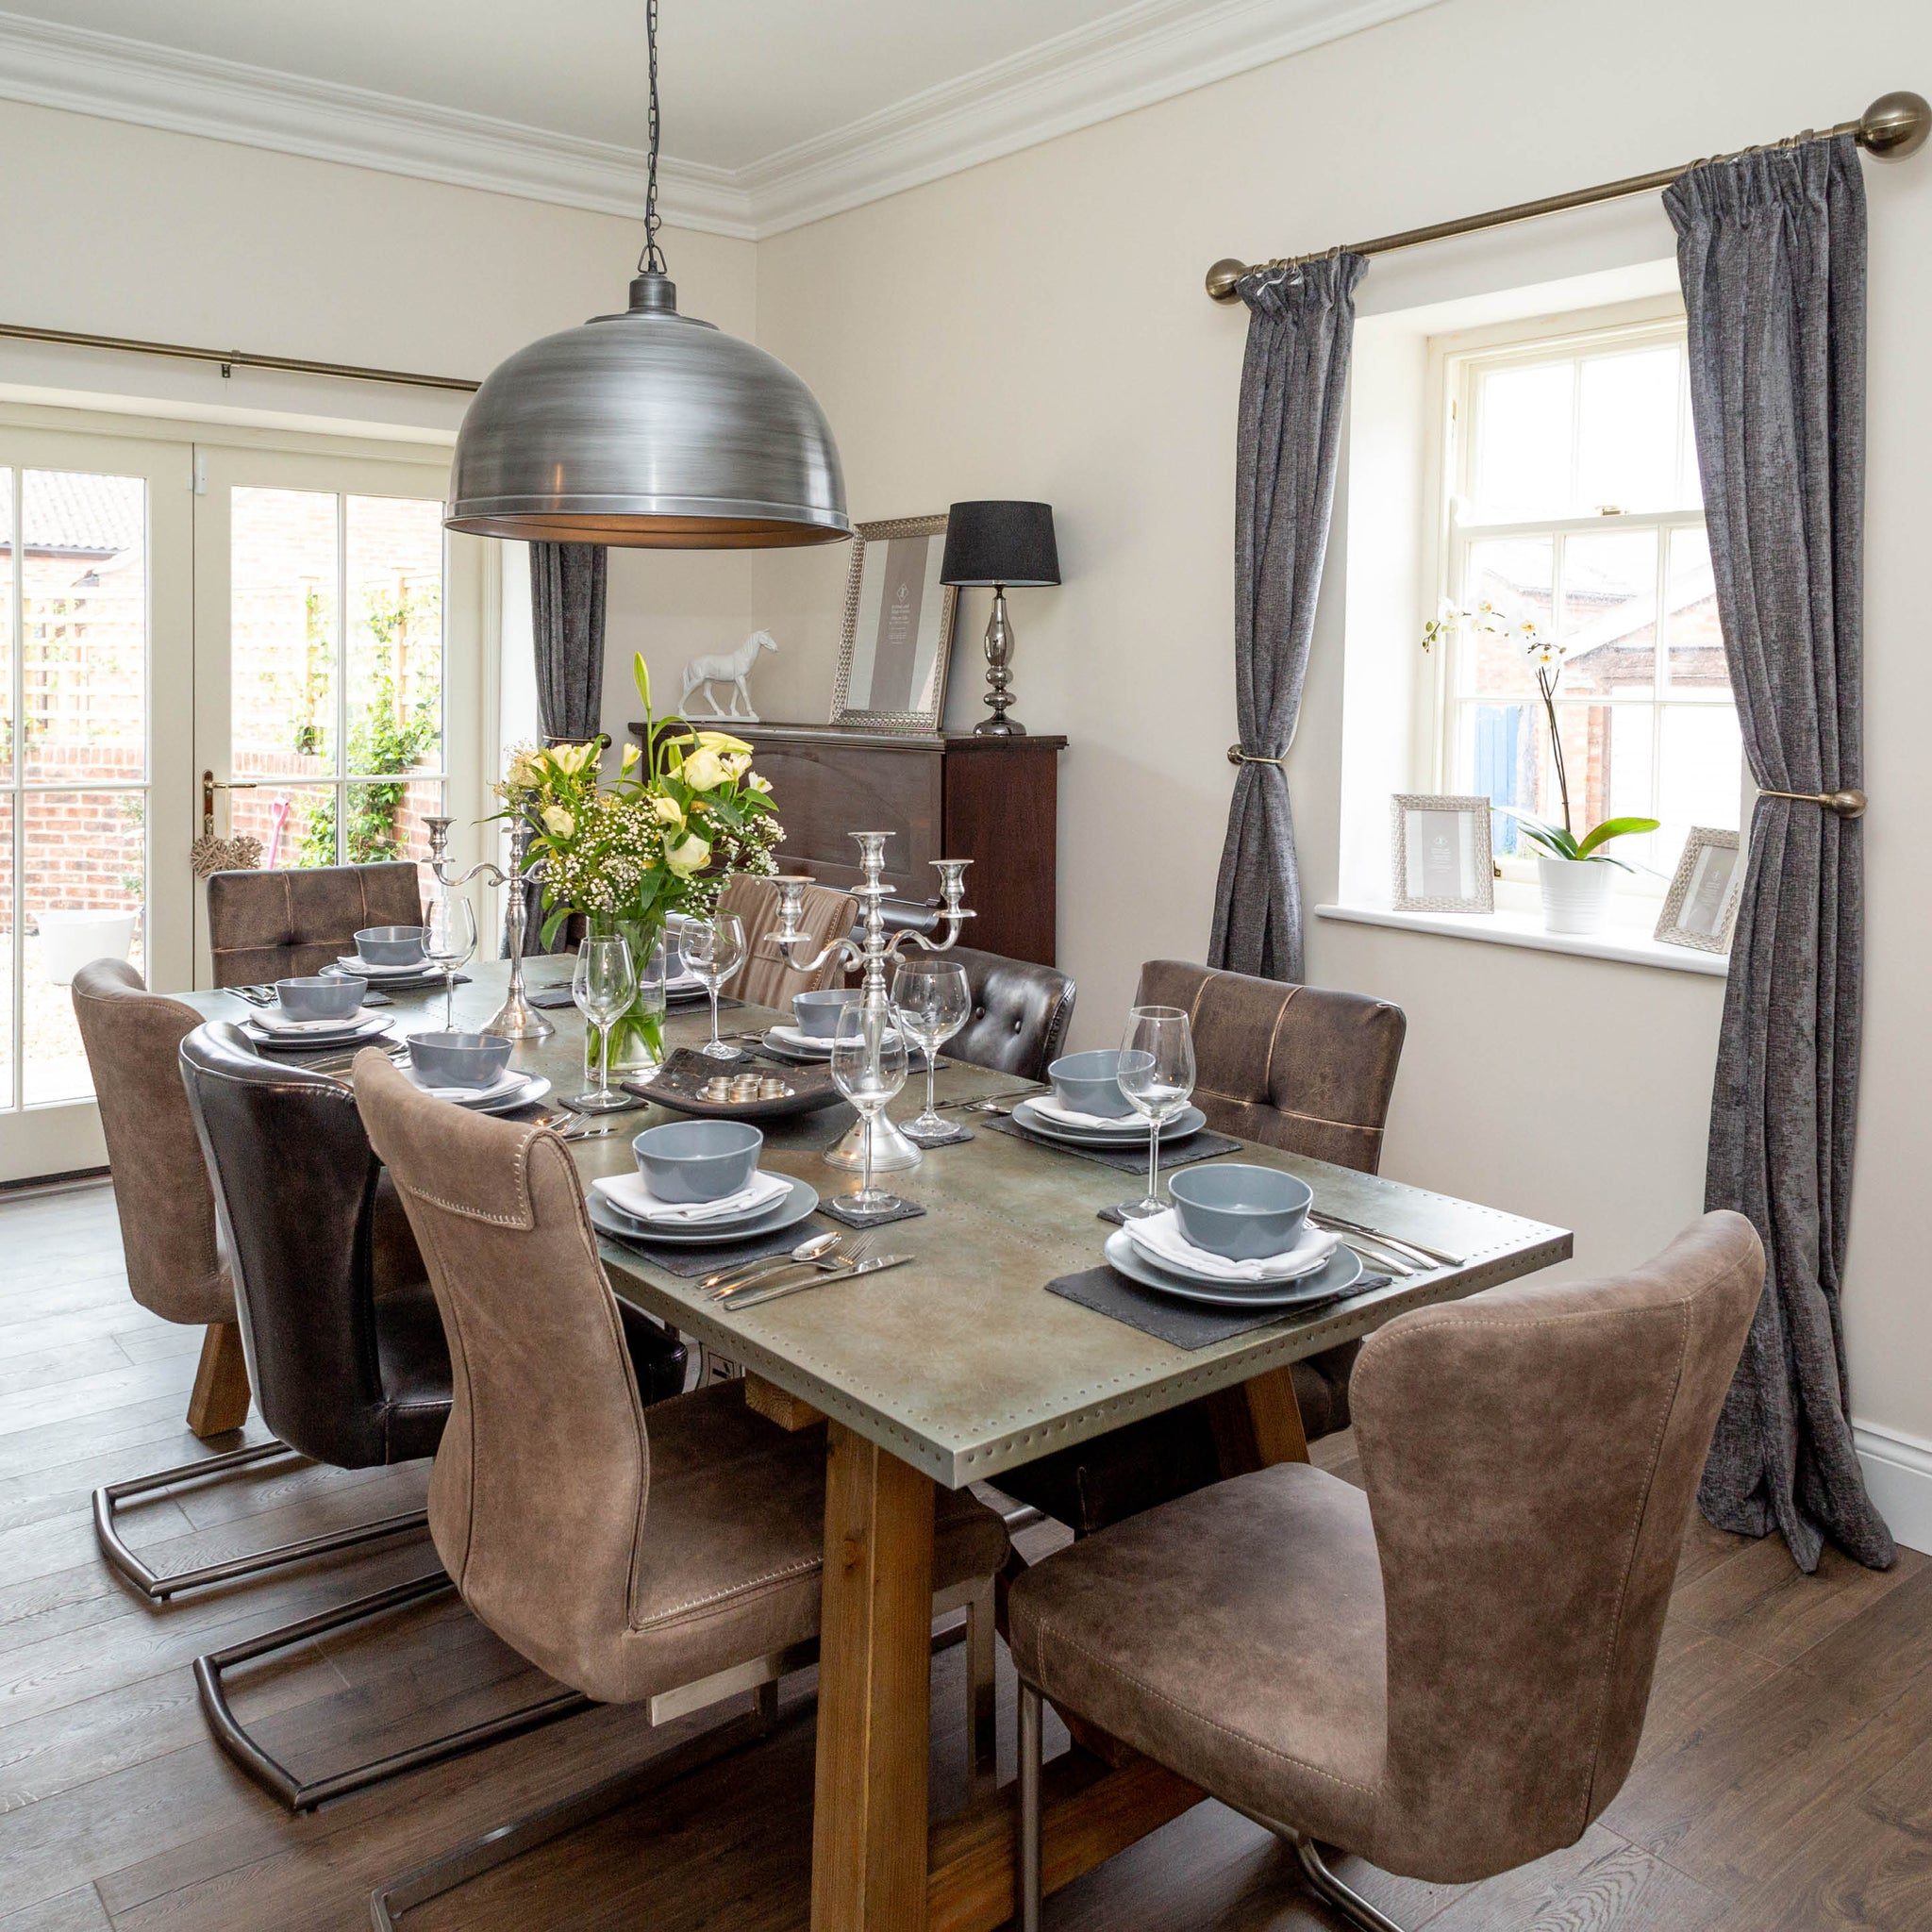 Grey and brown interior dining room